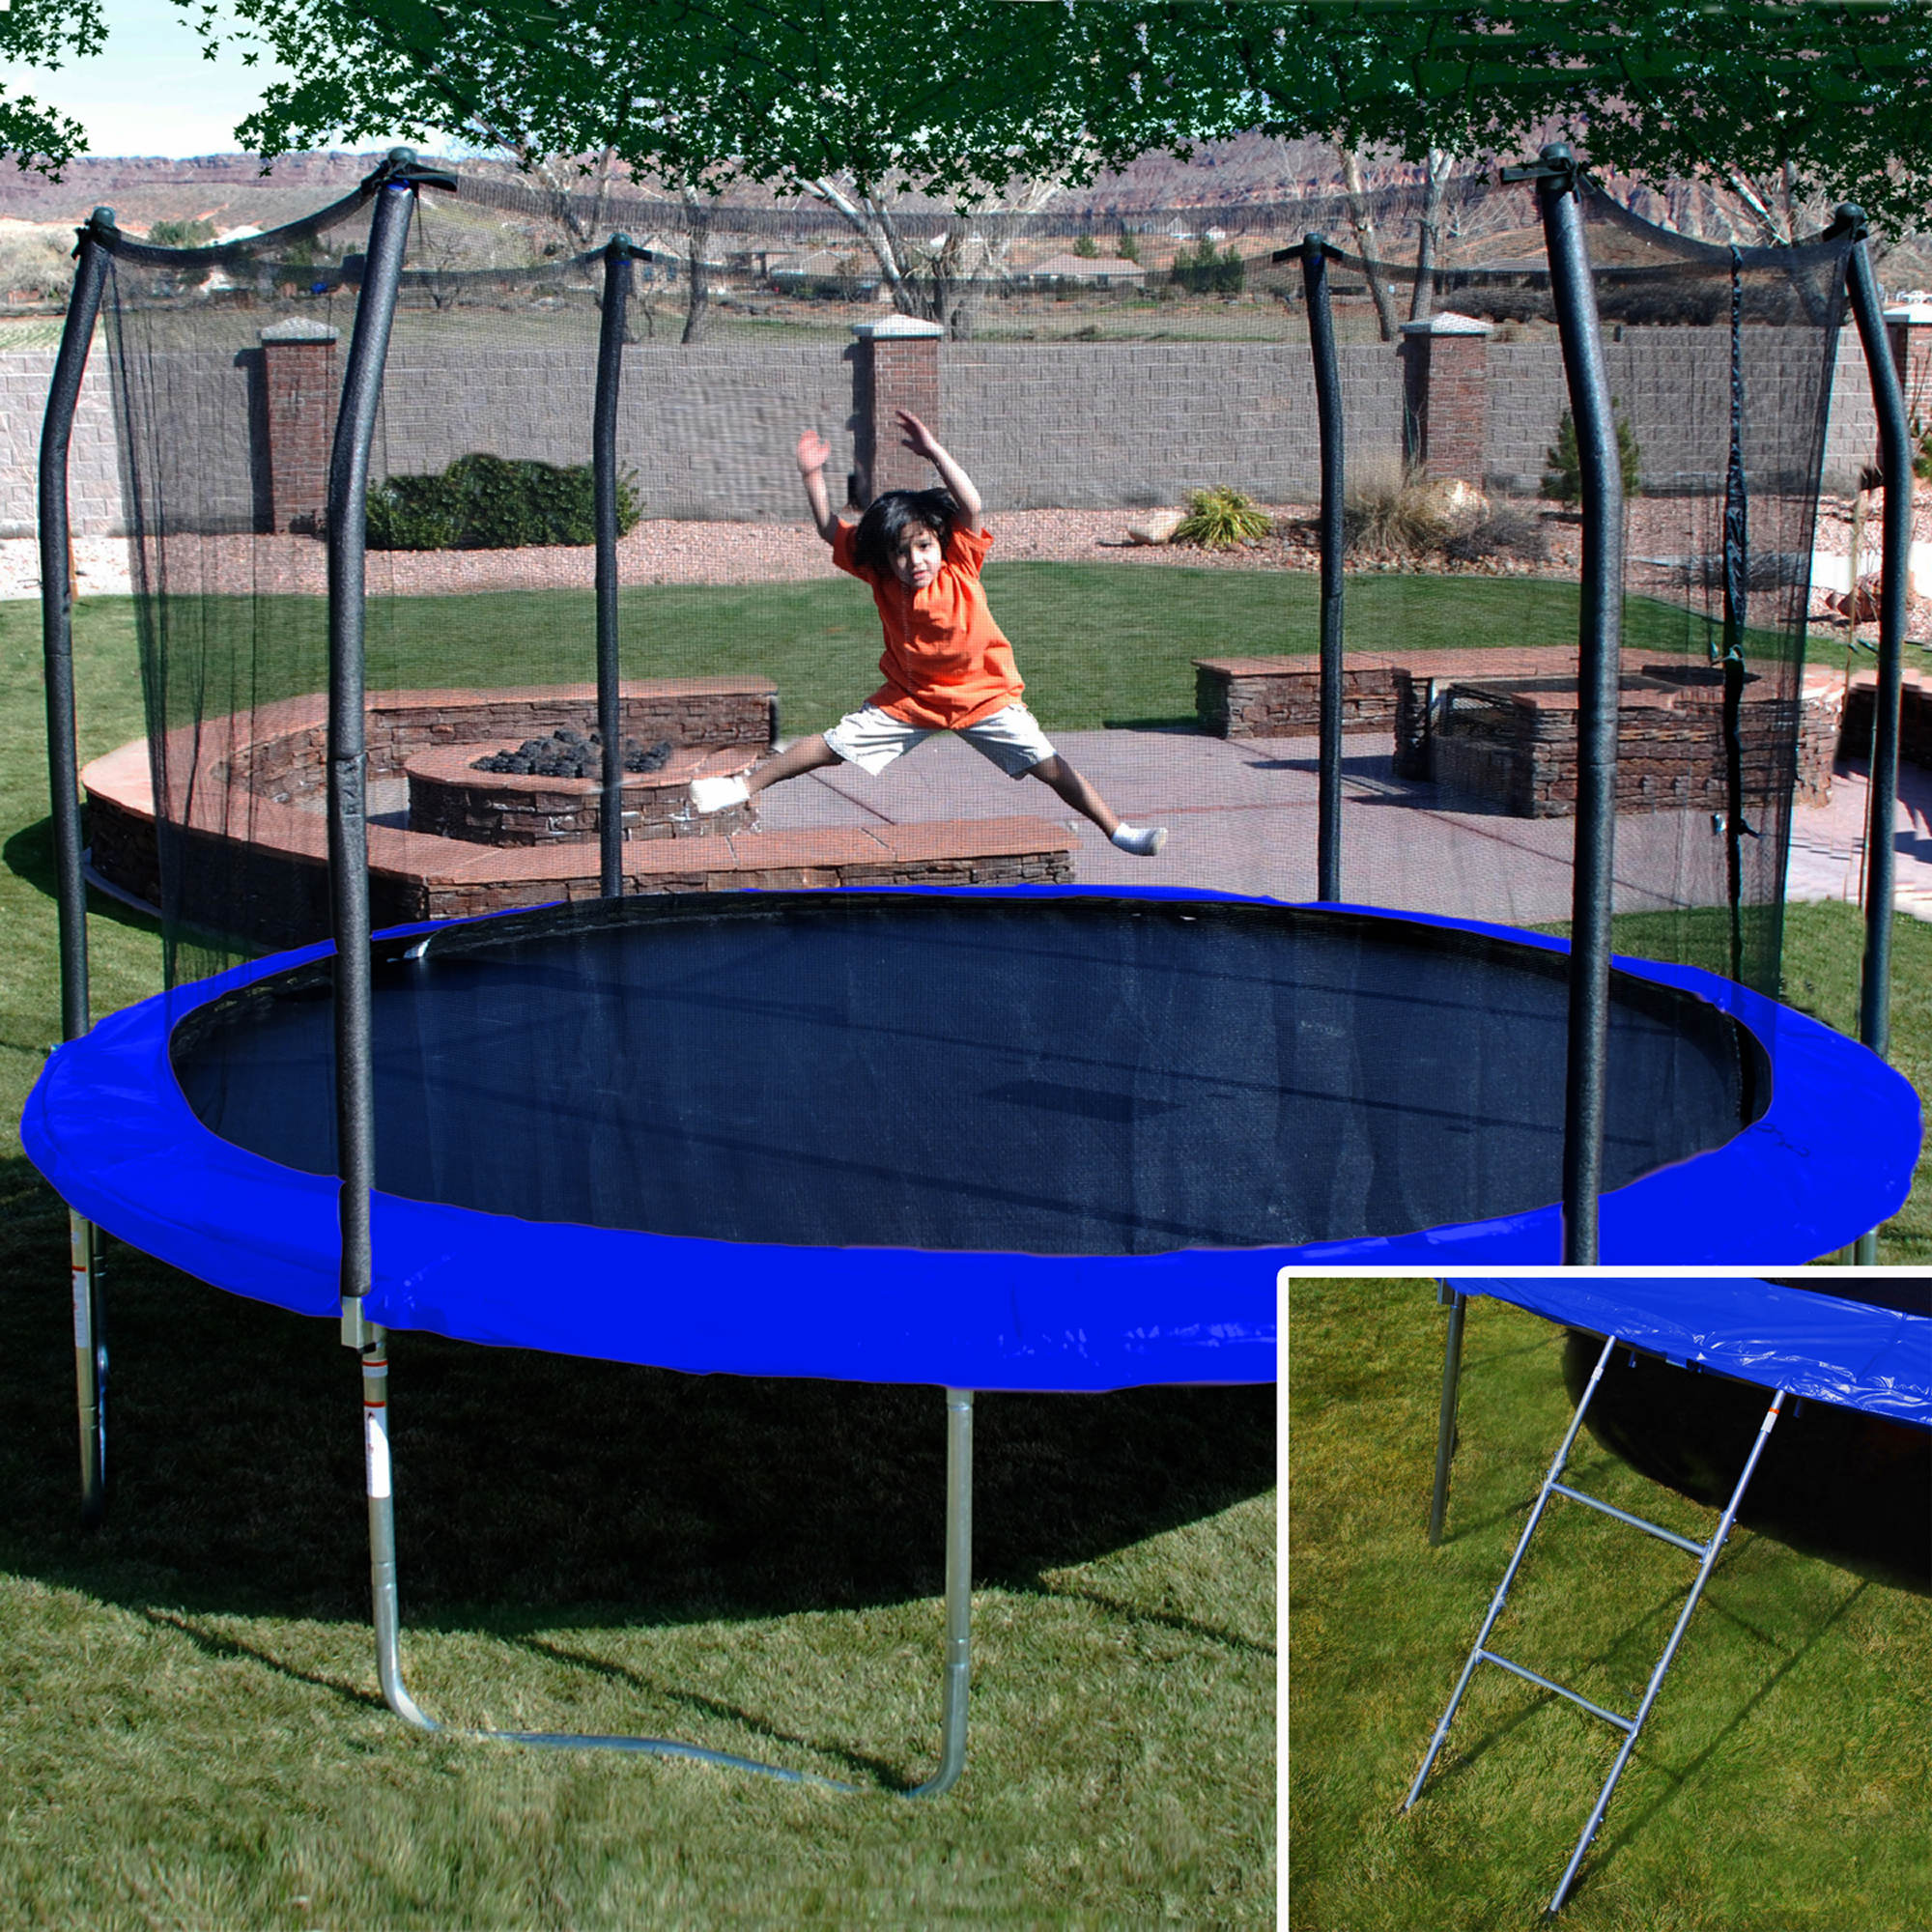 17 X 15 Oval Trampoline With Safety Enclosure: Skywalker Trampolines 17' X 15' Oval Trampoline With Bonus